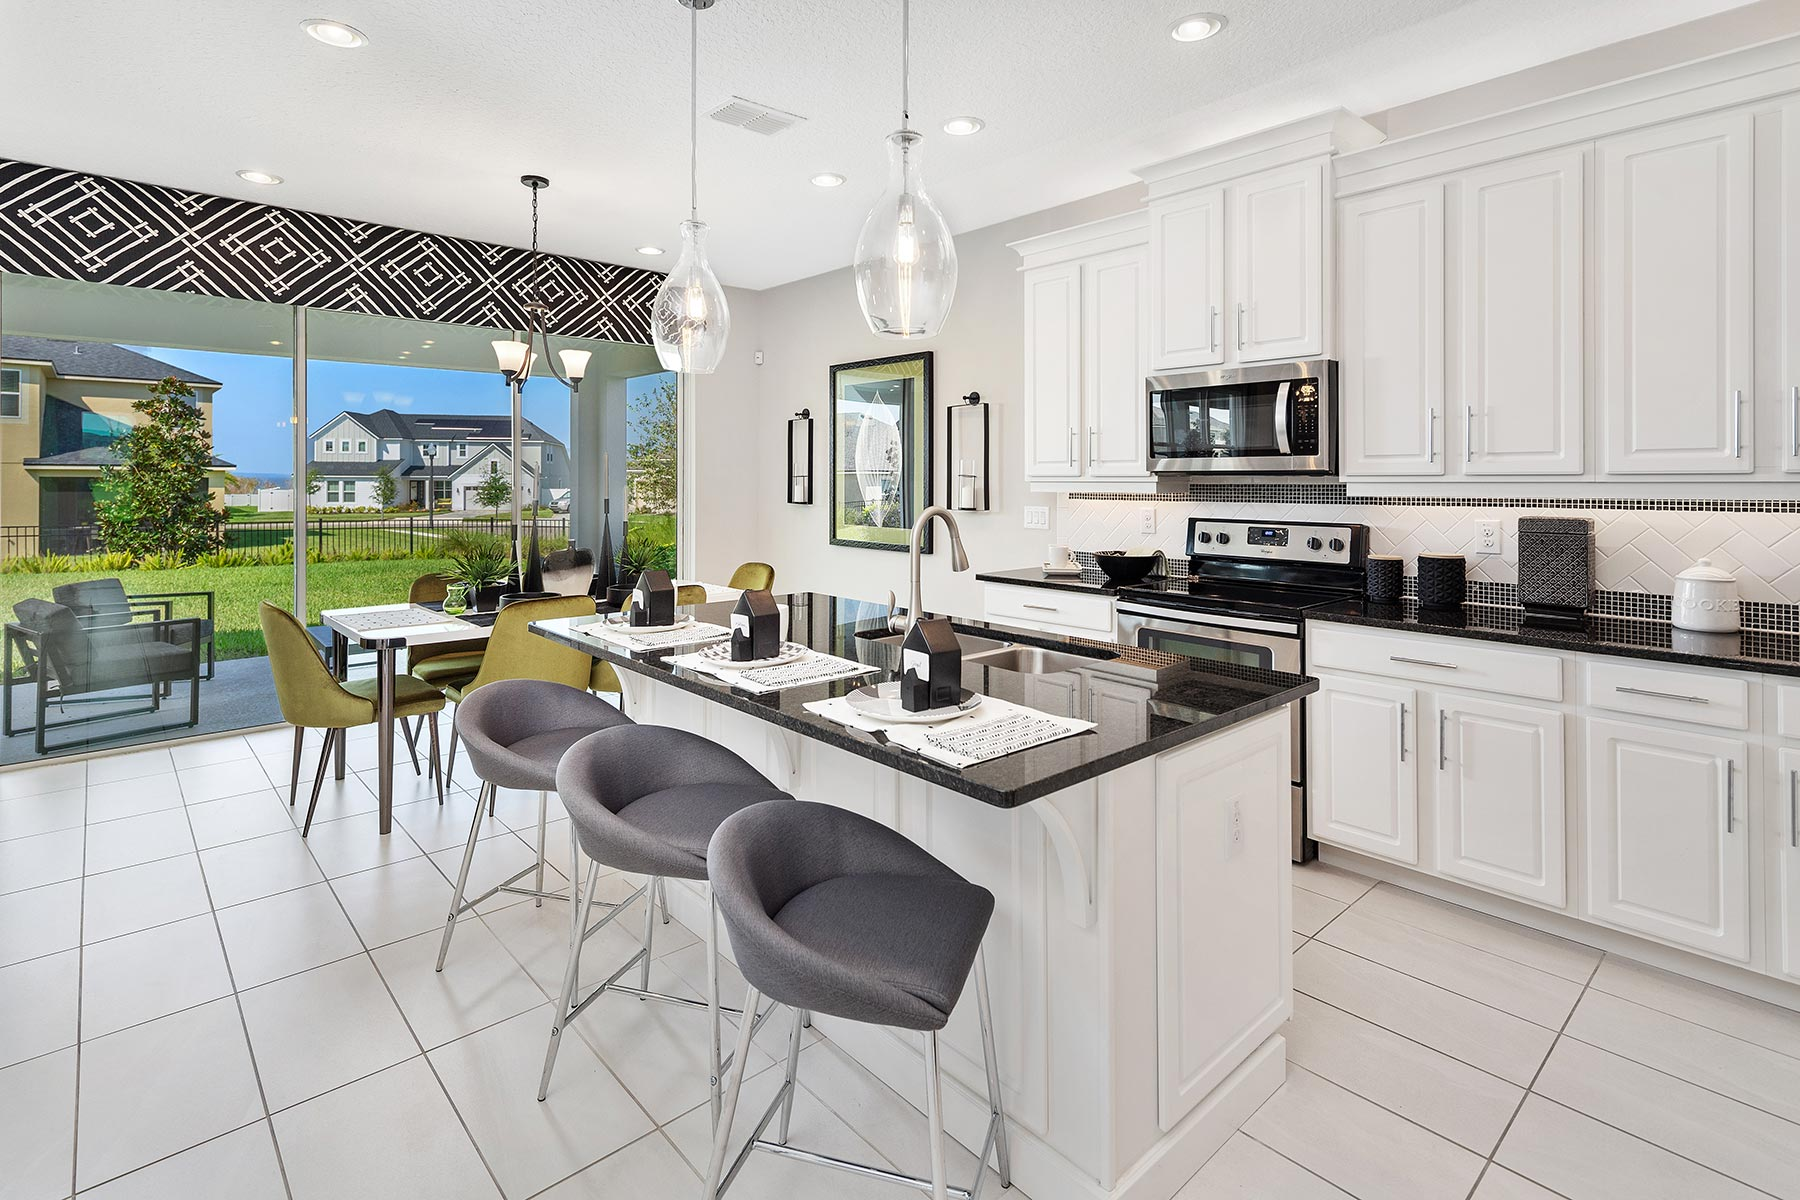 Campbell Plan Kitchen at Tohoqua in Kissimmee Florida by Mattamy Homes